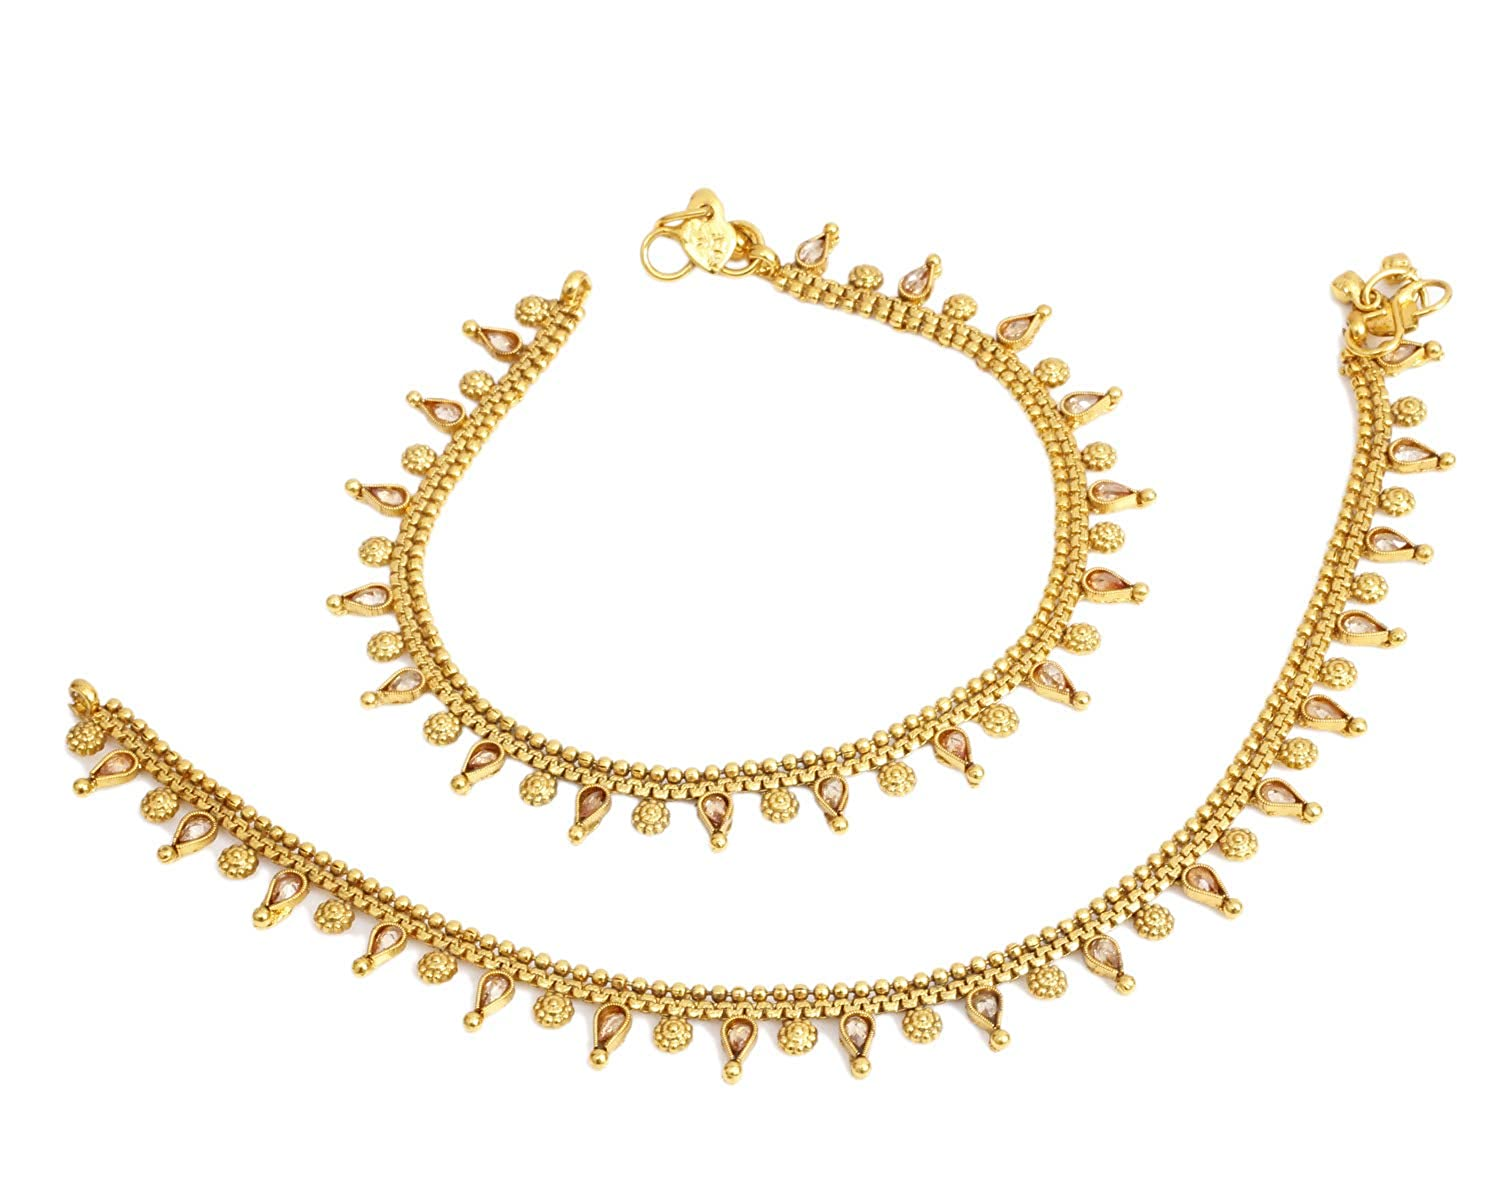 Ratna creation New Indian Polki 18k Gold Plated Crystal Payal Anklet Jewelry Women Wedding Costume PL-21